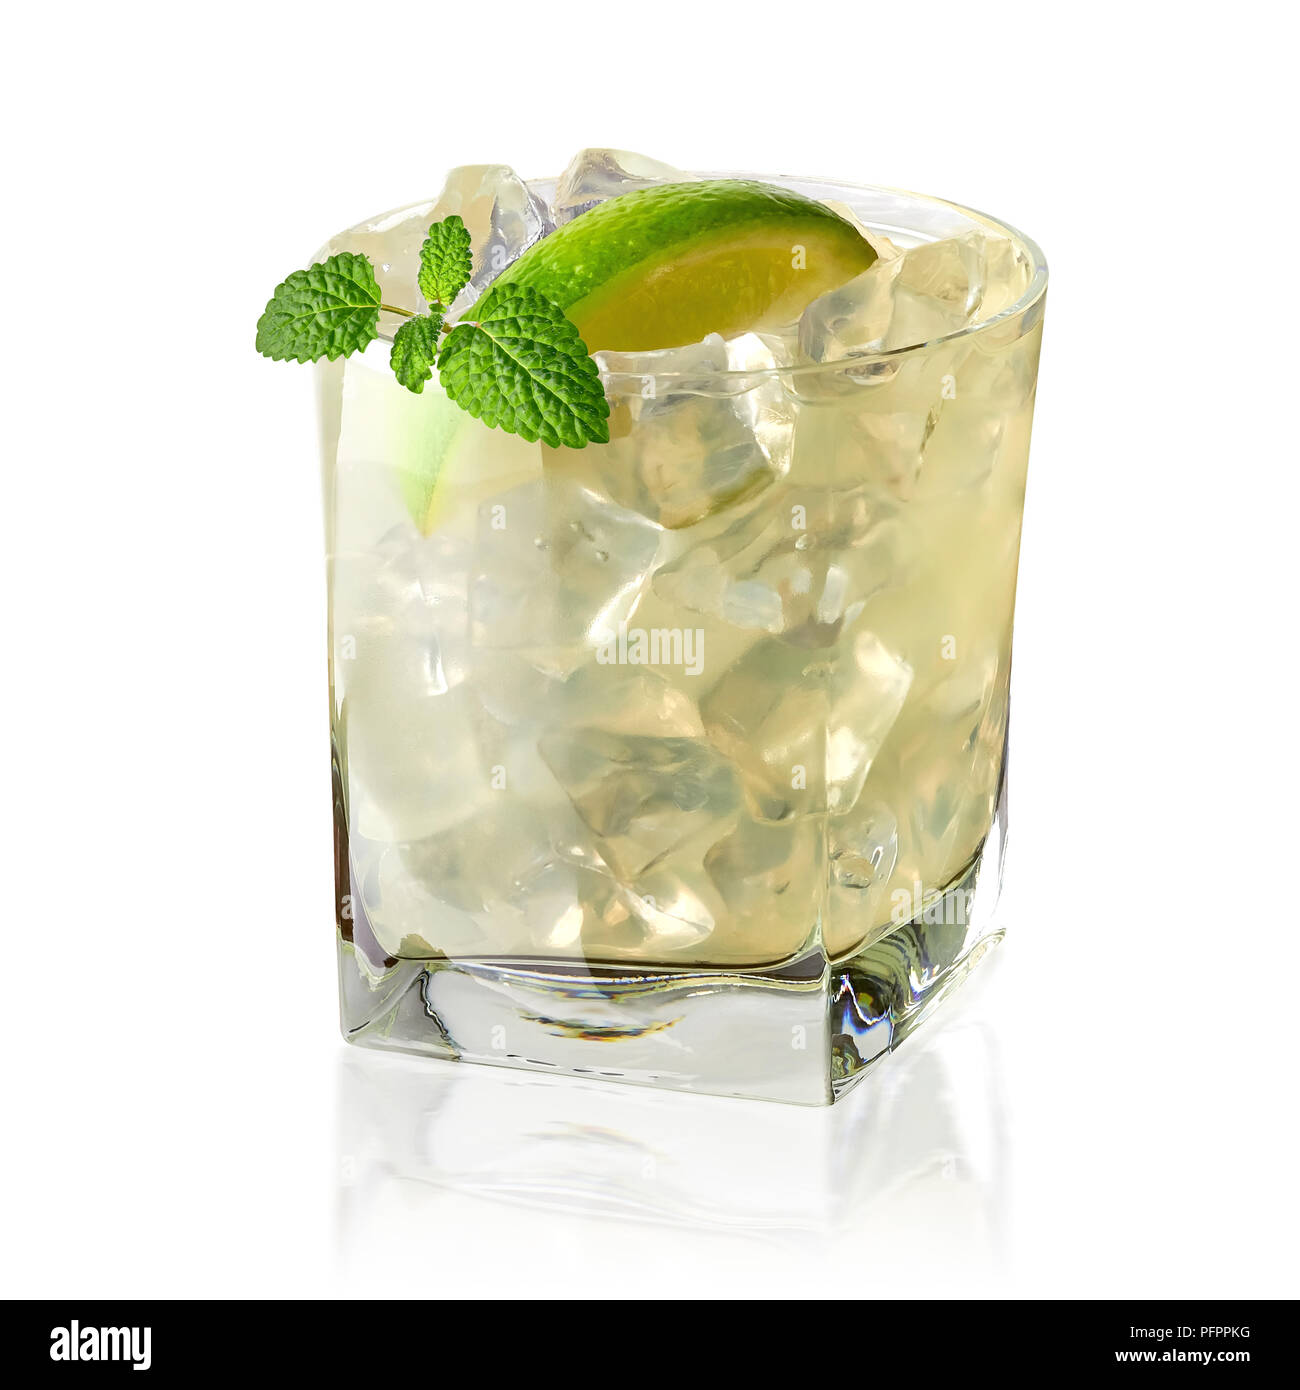 Vodka lime, gimlet or gin tonic with ice in glass on white background including clipping path - Stock Image